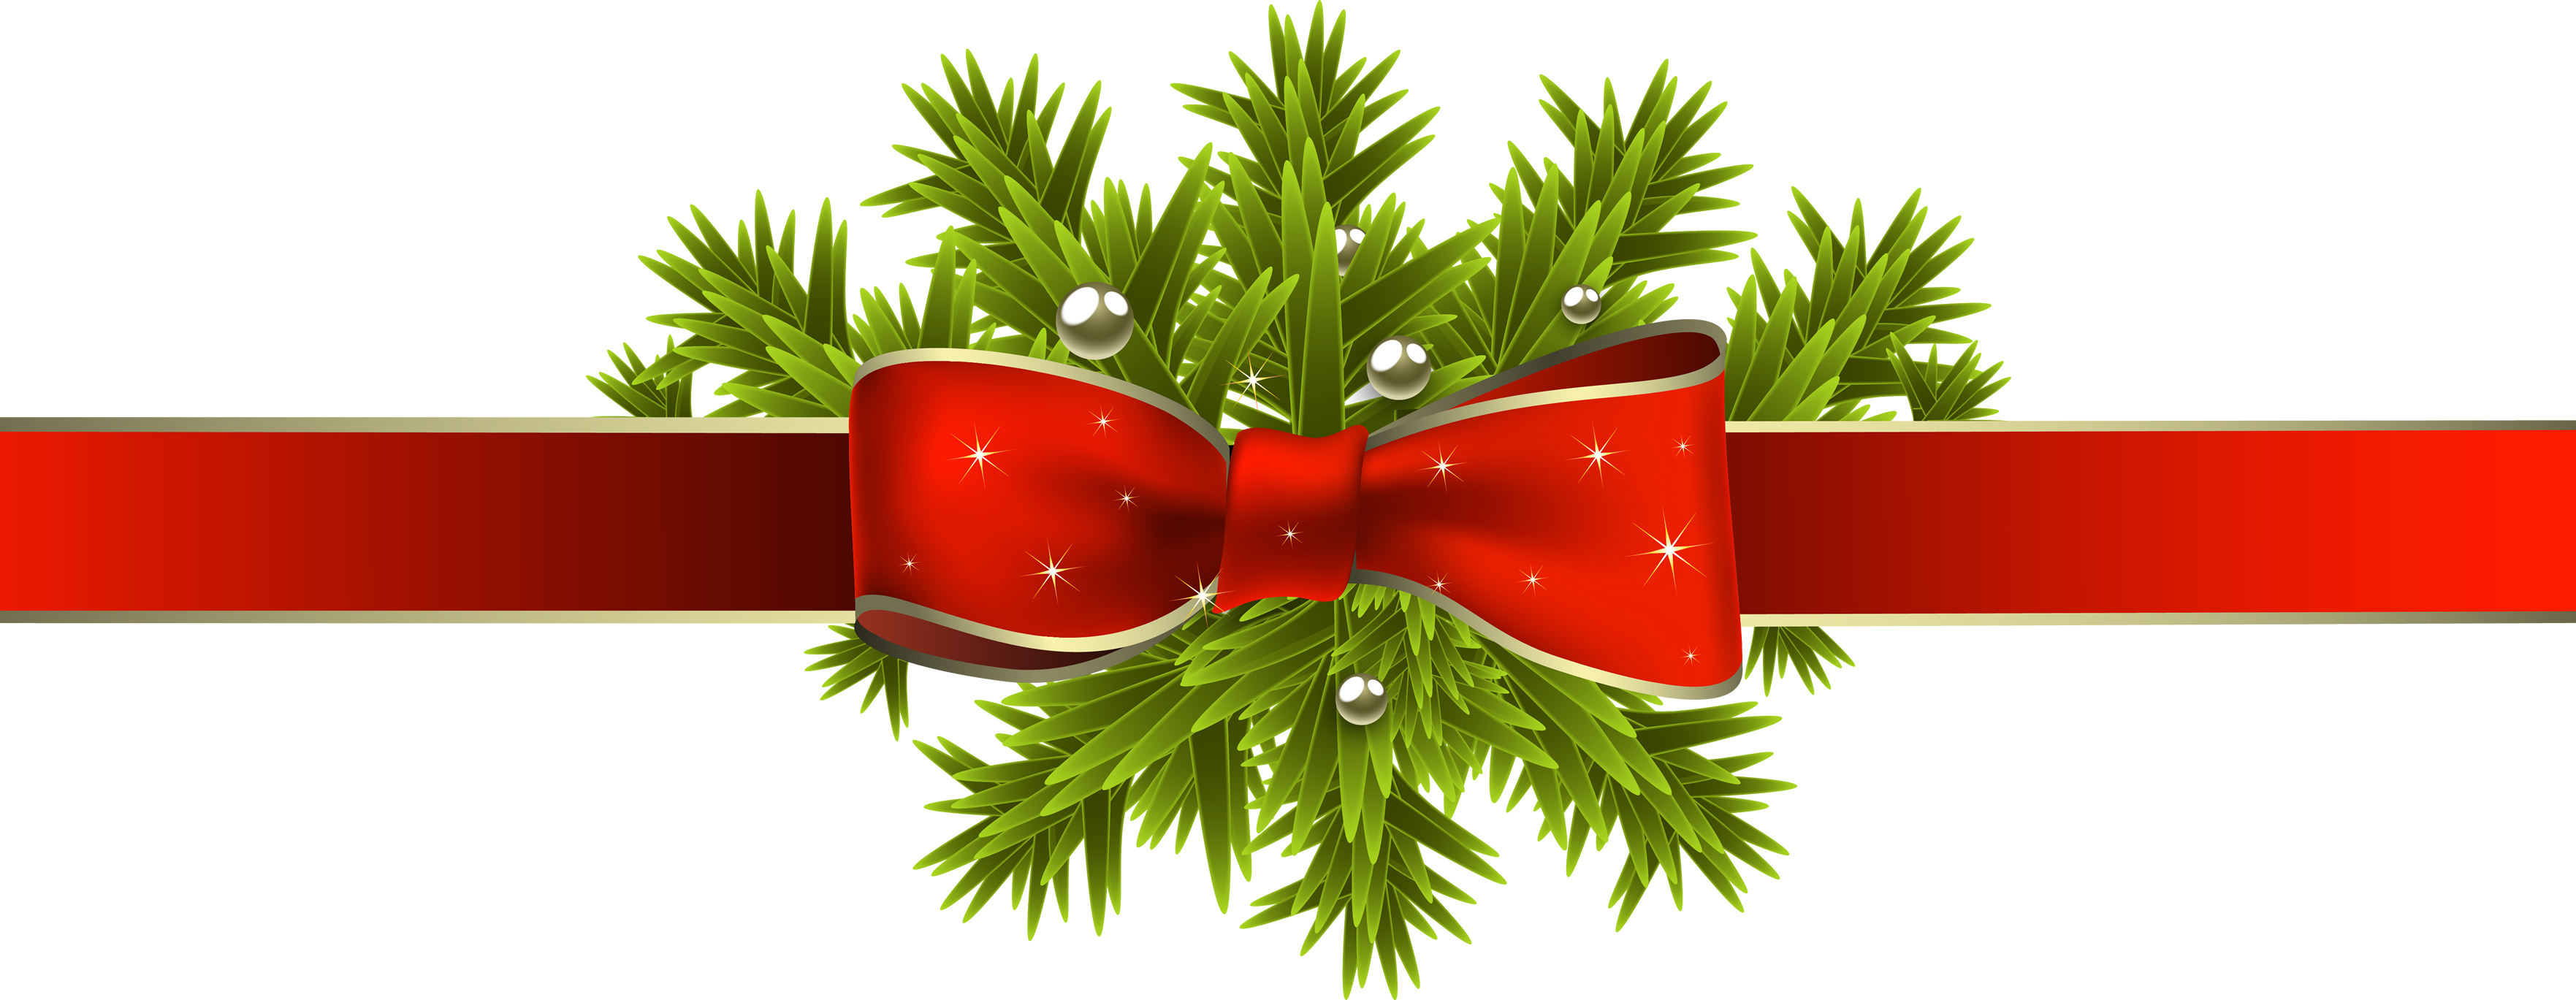 Christmas png green. Images download decoration